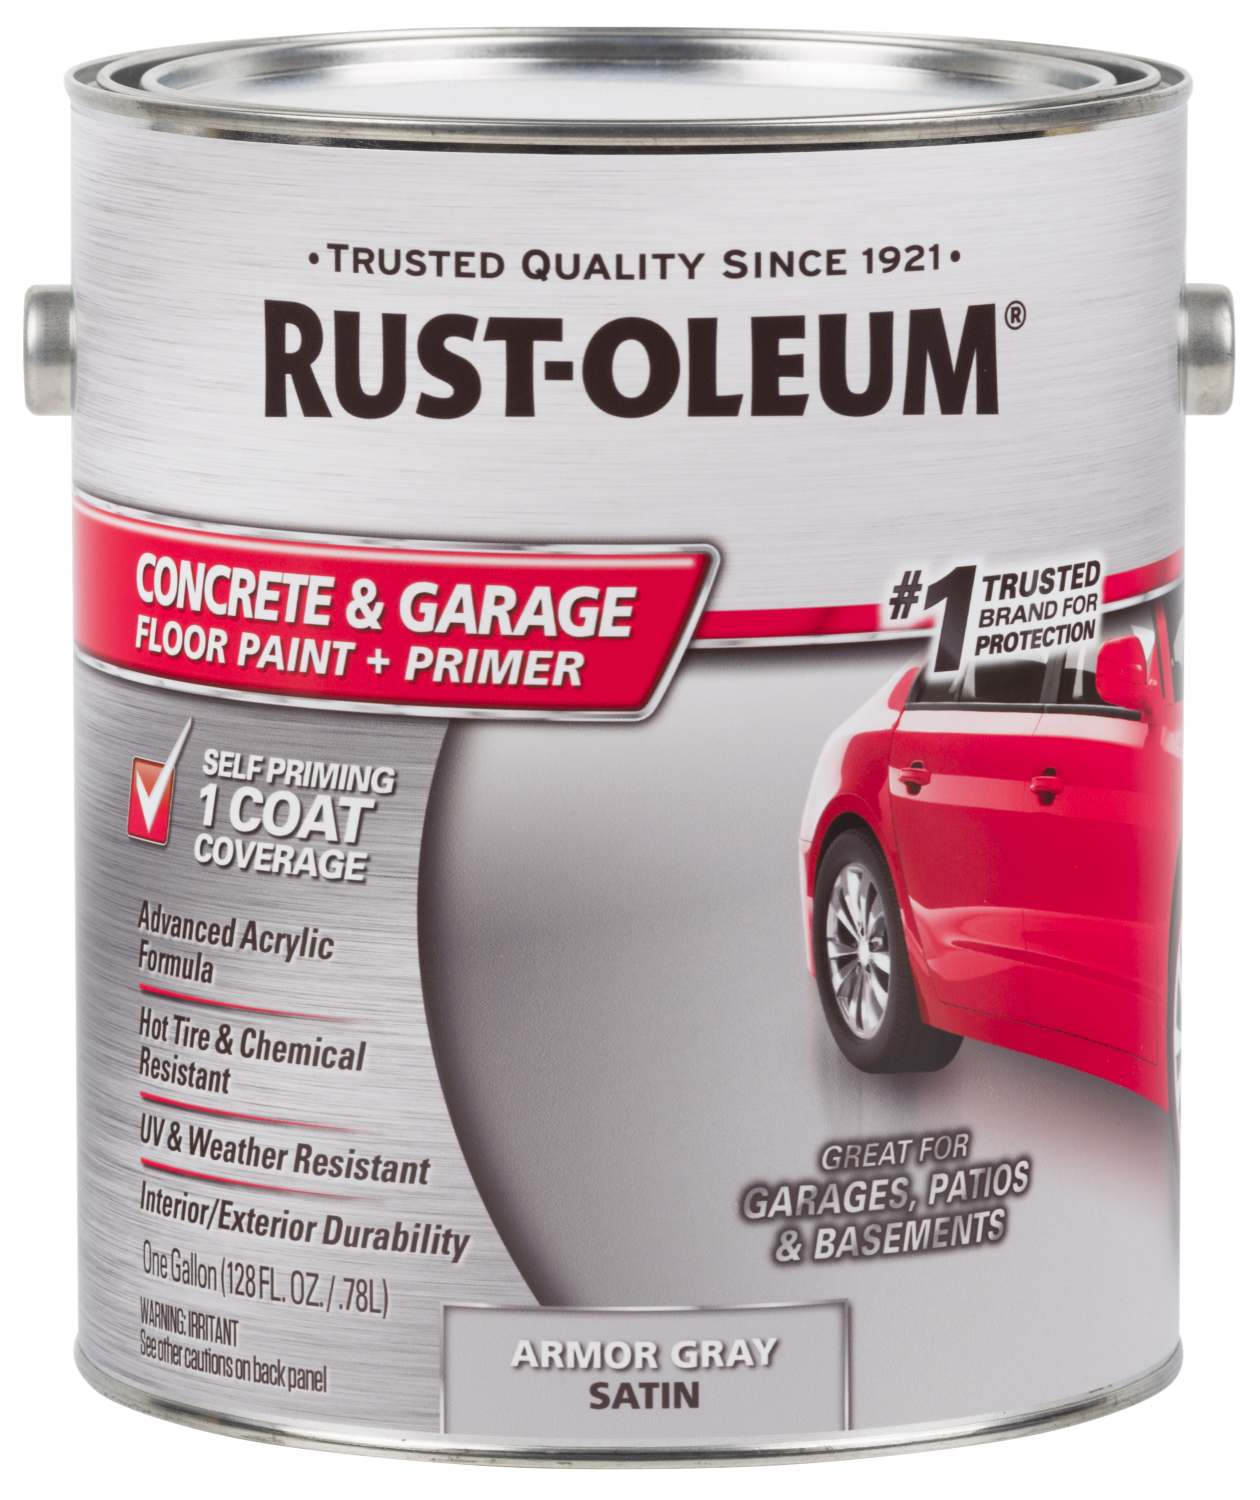 RustOleum 225359 EpoxyShield Concrete Floor Paint Armor